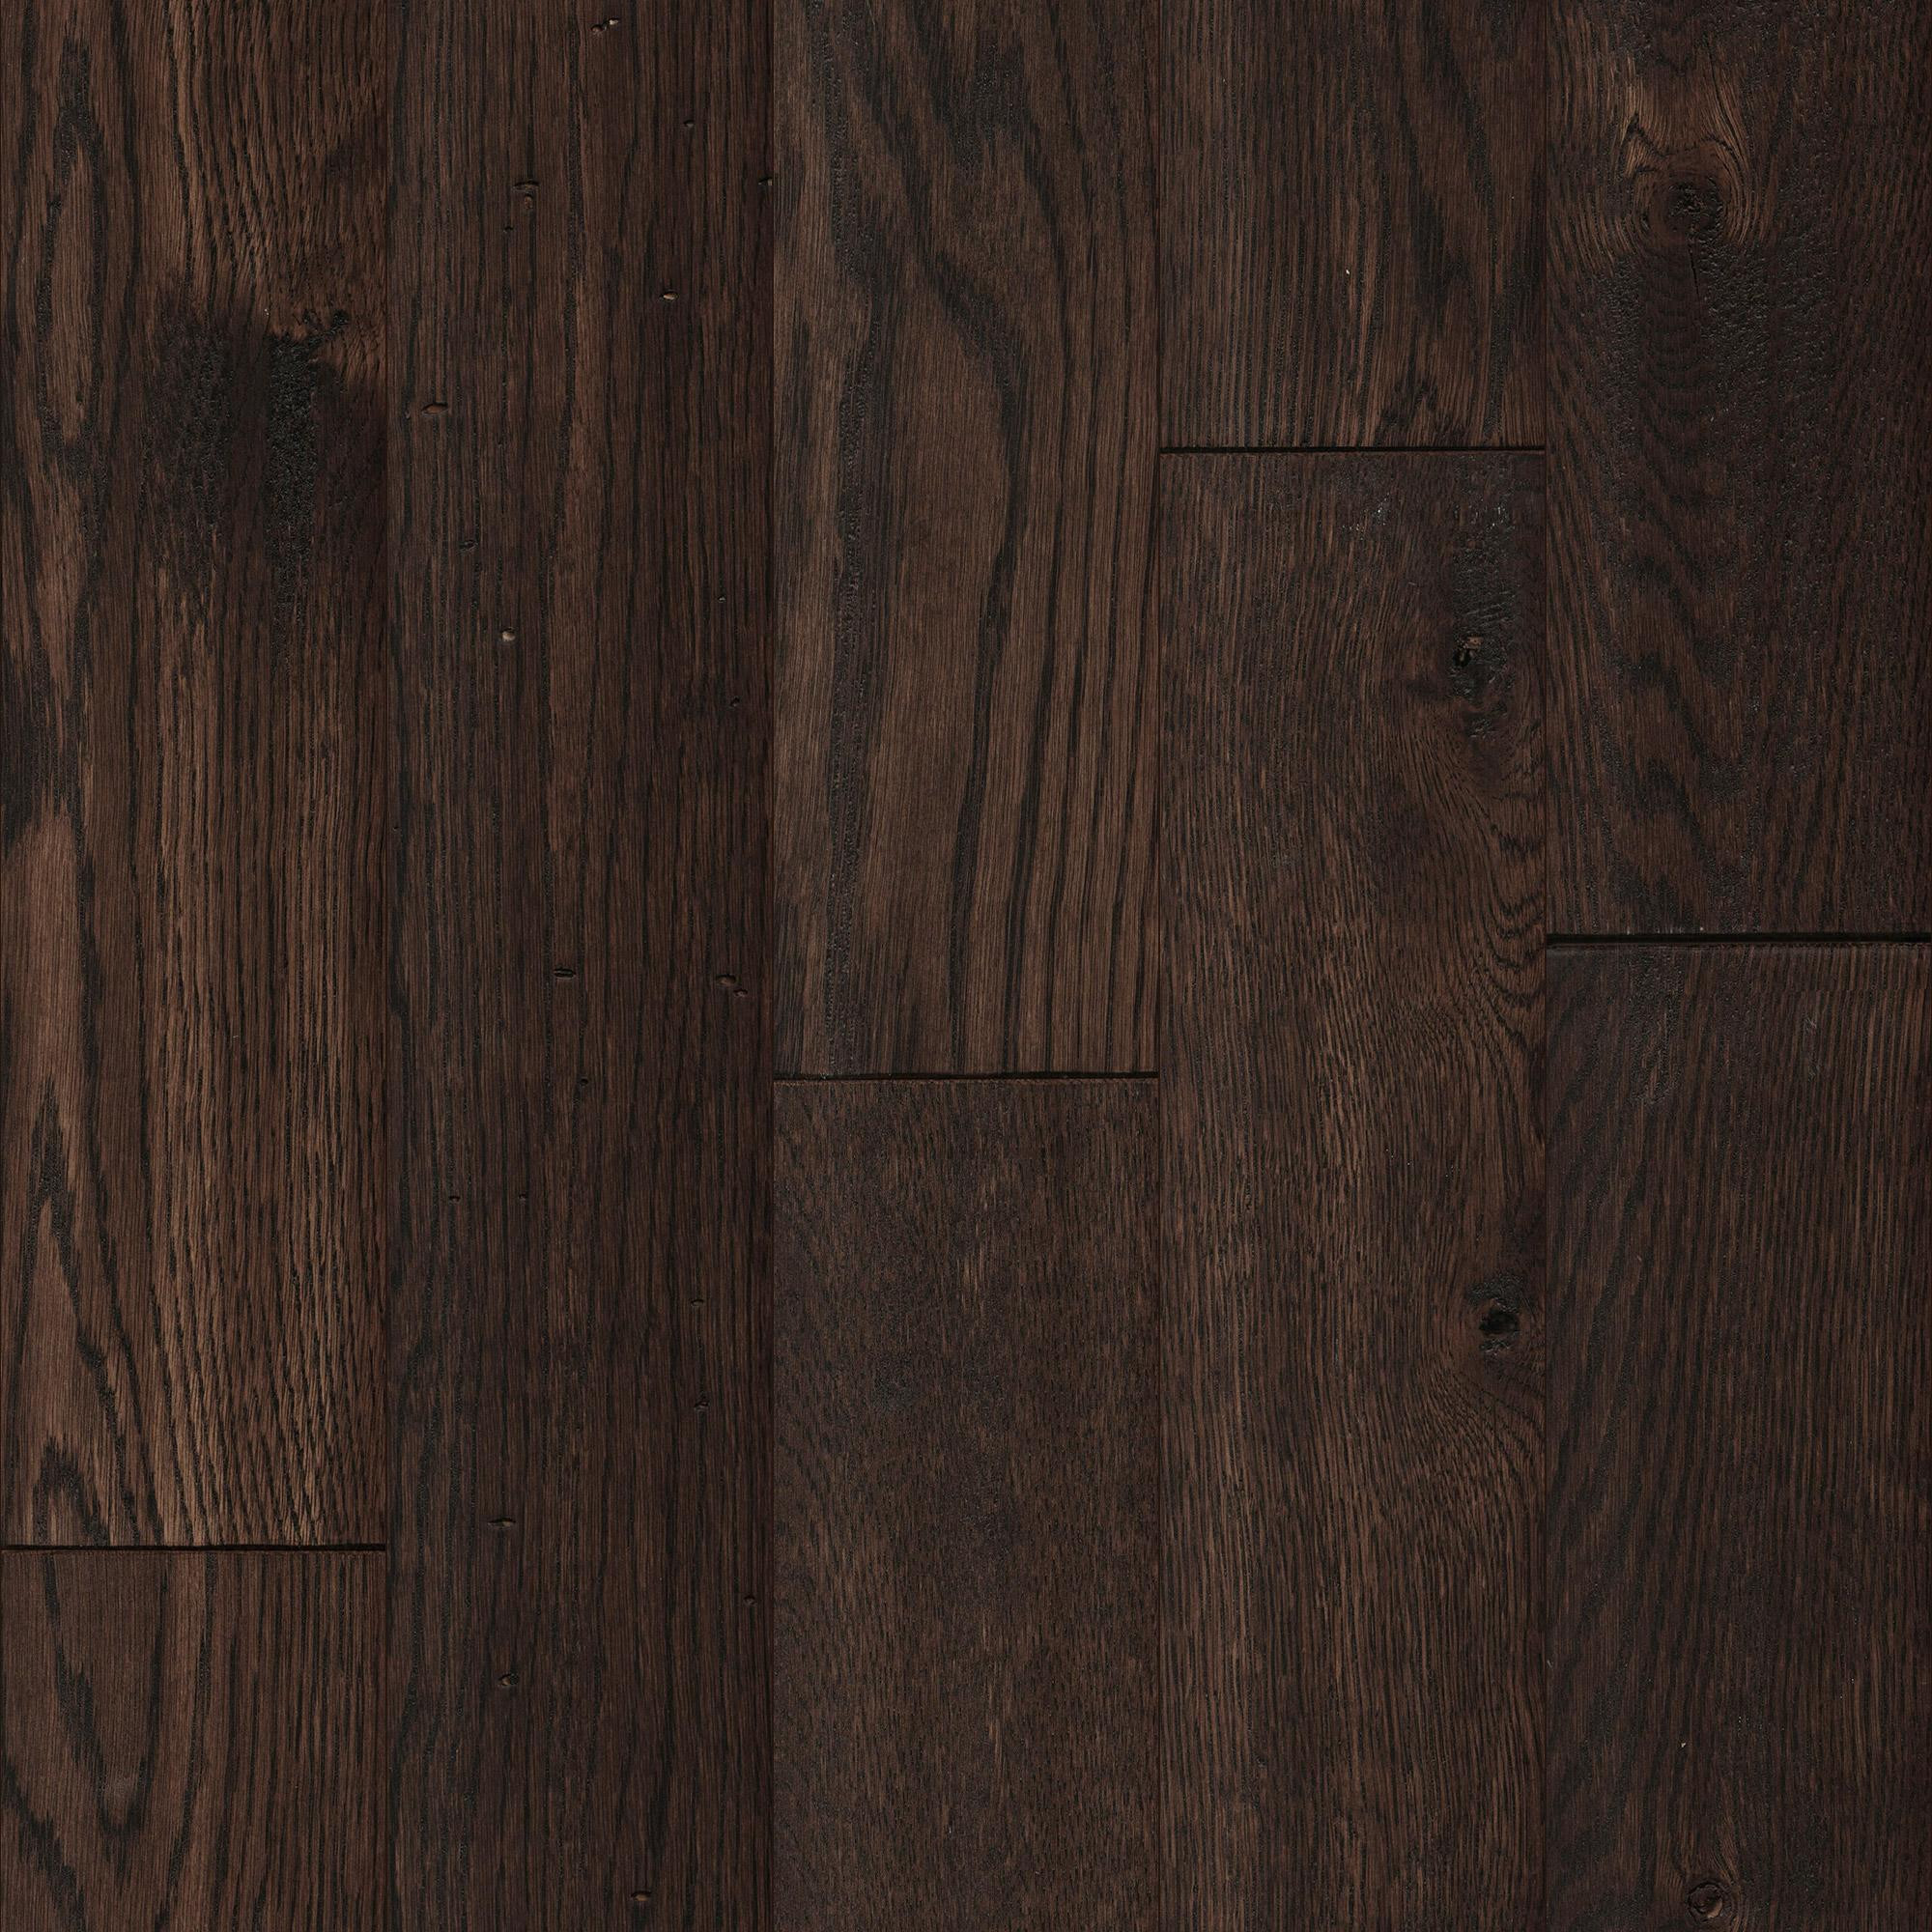 how to install 3 4 hardwood flooring of mullican chatelaine oak ebony 4 wide solid hardwood flooring throughout more views